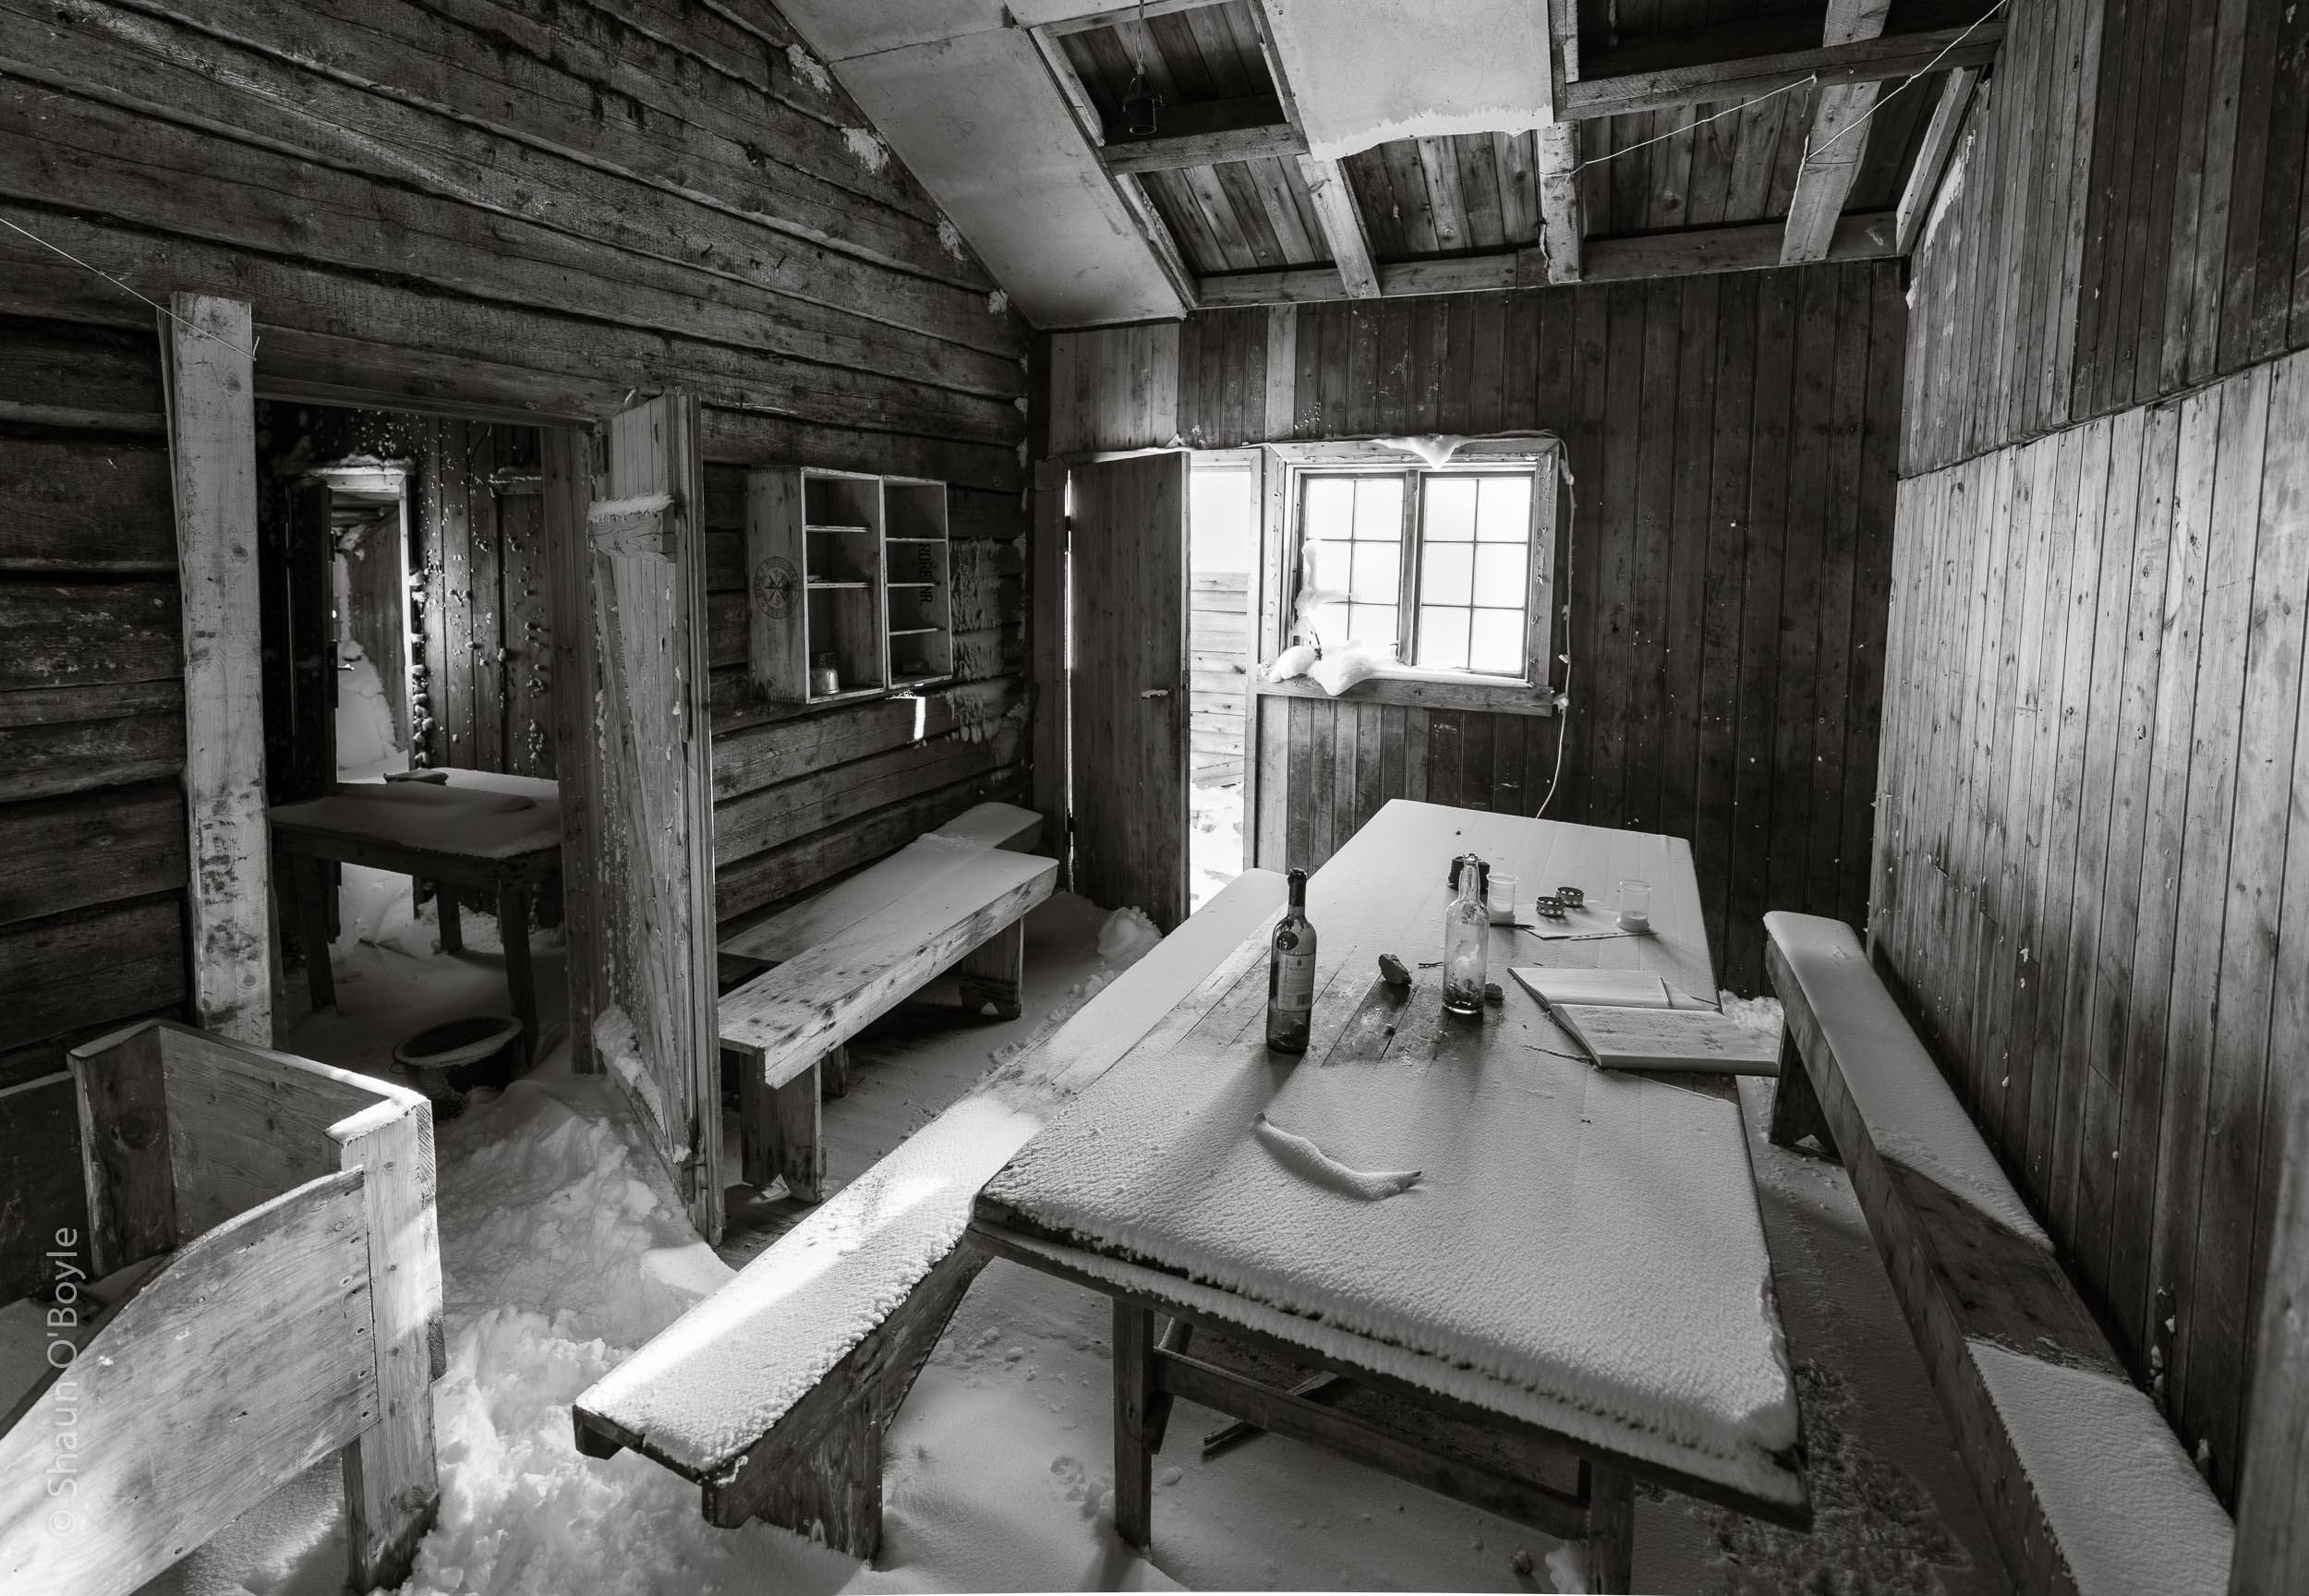 Early 20th century coal miners cabin interior